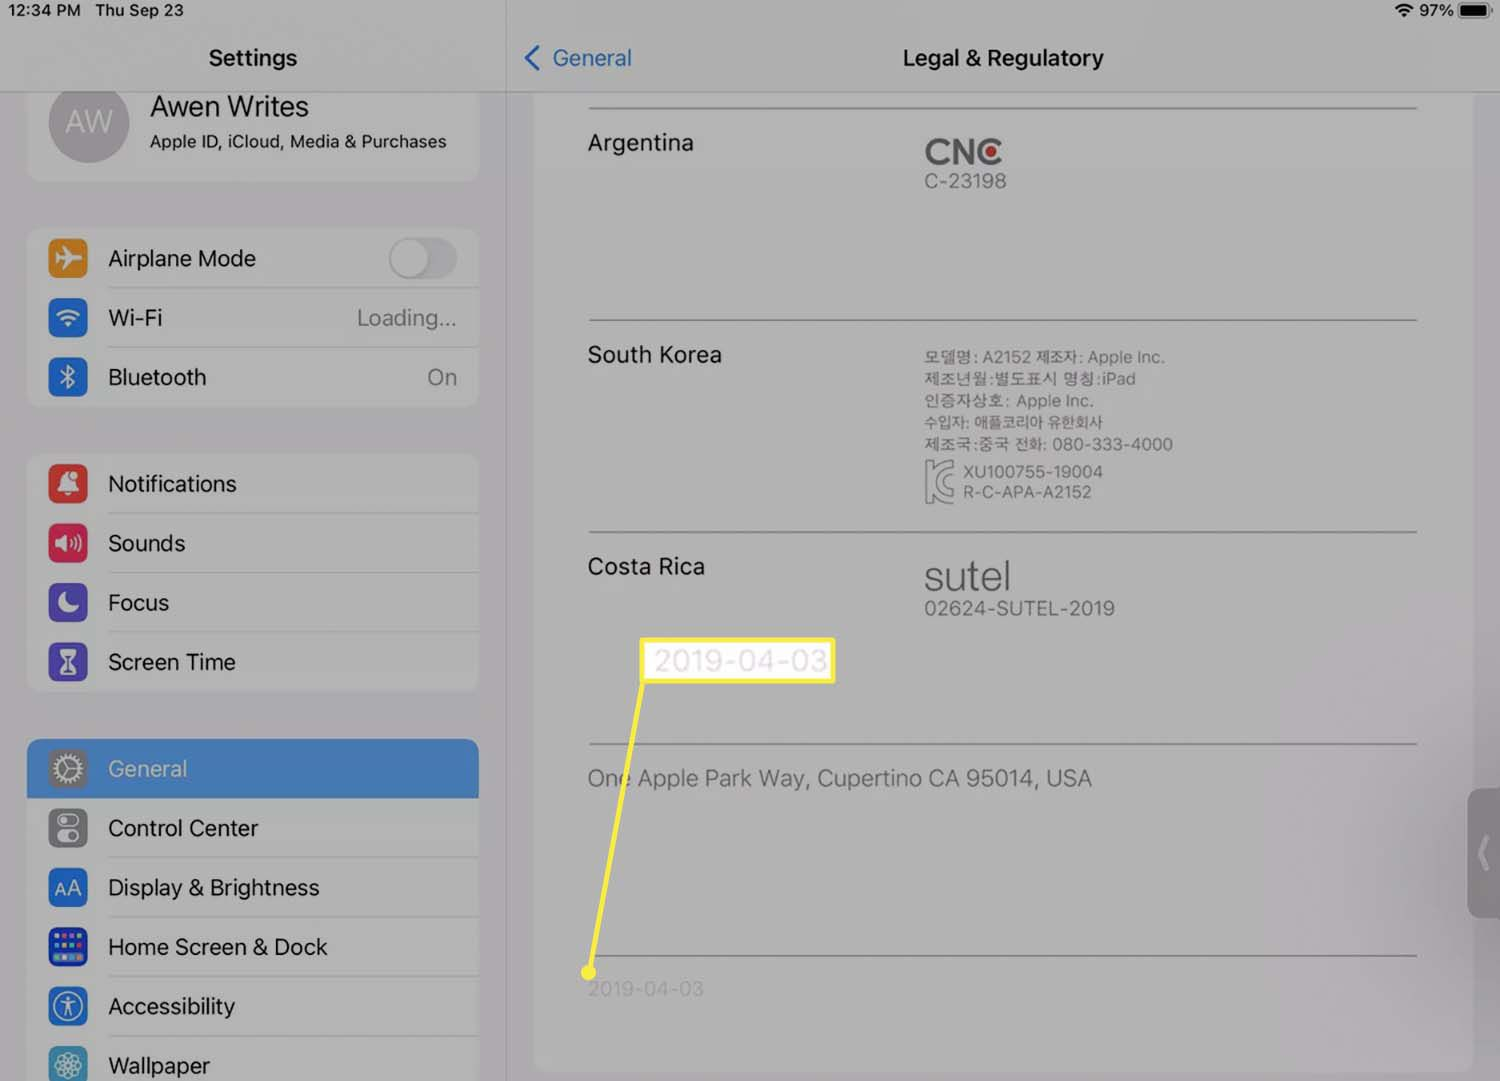 The year an iPad was sold from the Legal & Regulatory section of iPad settings.